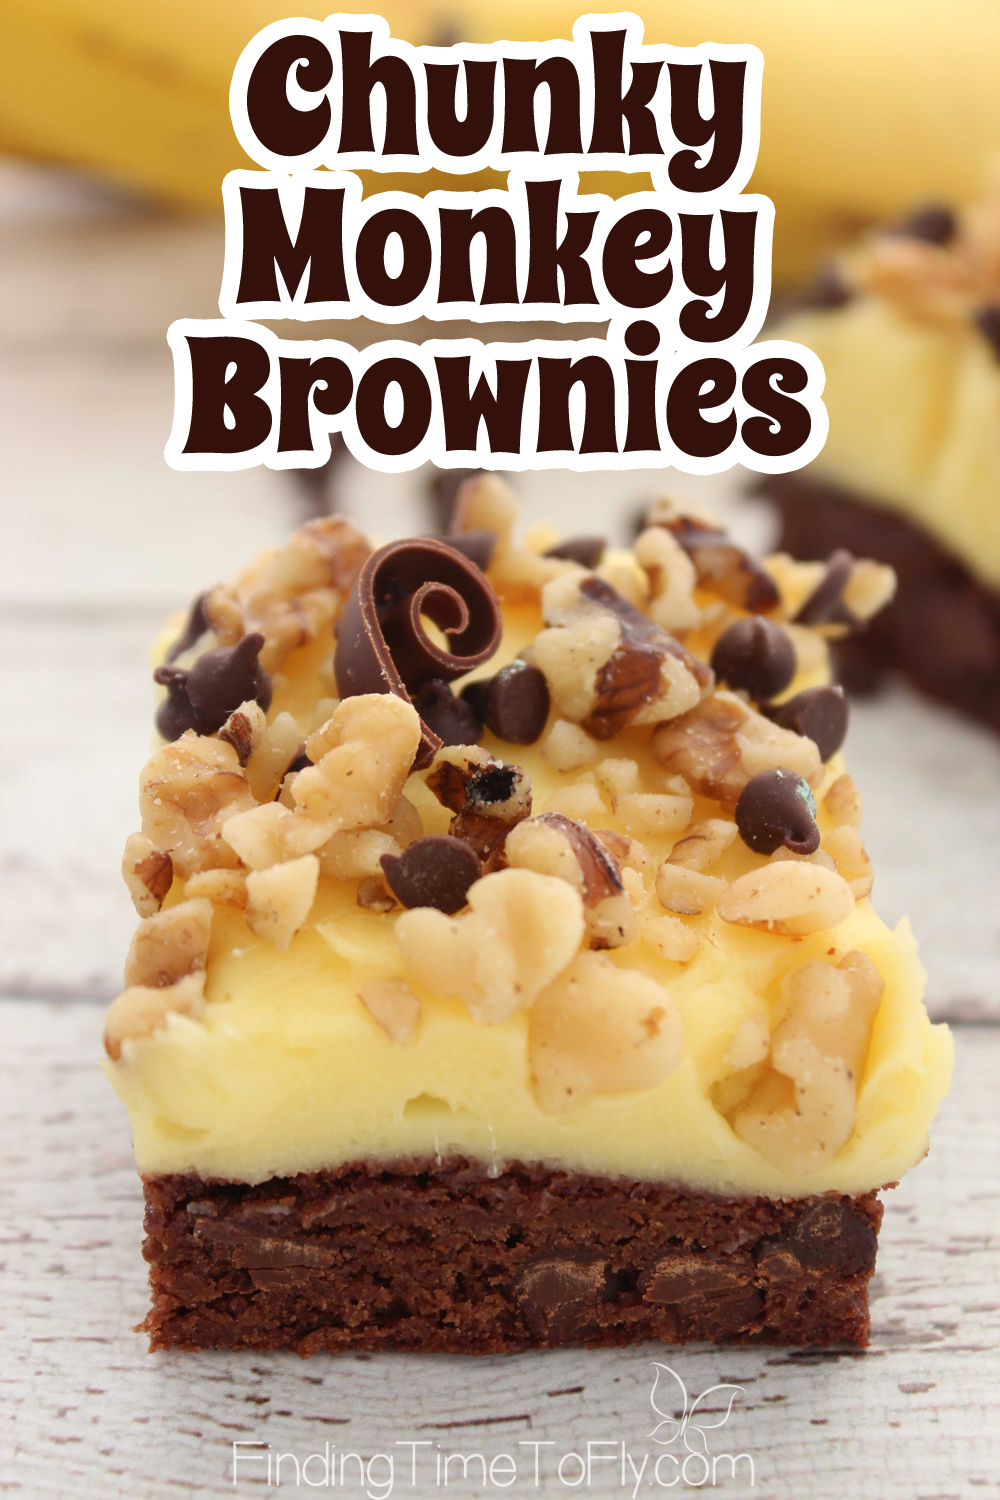 Chunky Monkey Brownies are a great option for a potluck dessert. Love chocolate and banana flavors together!